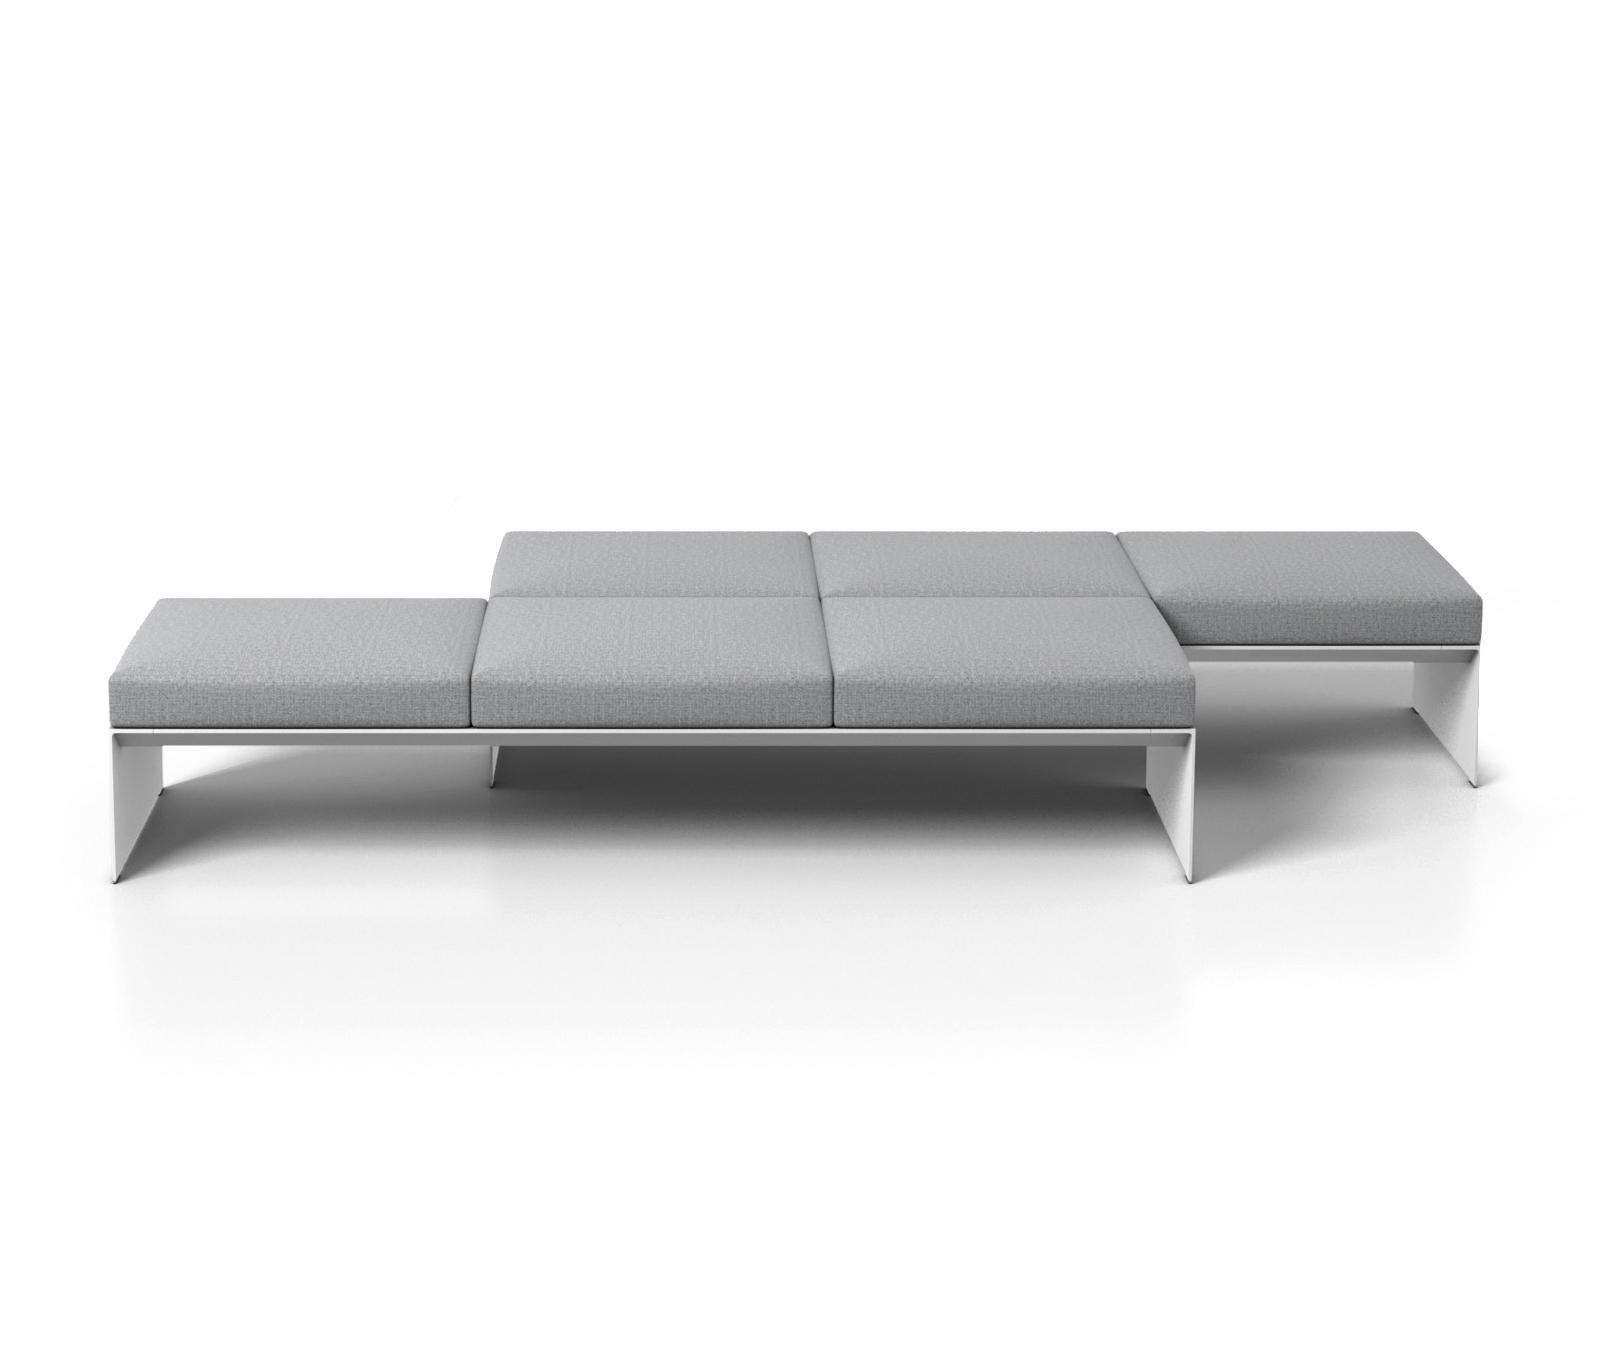 BANC - Benches from Brunner   Architonic